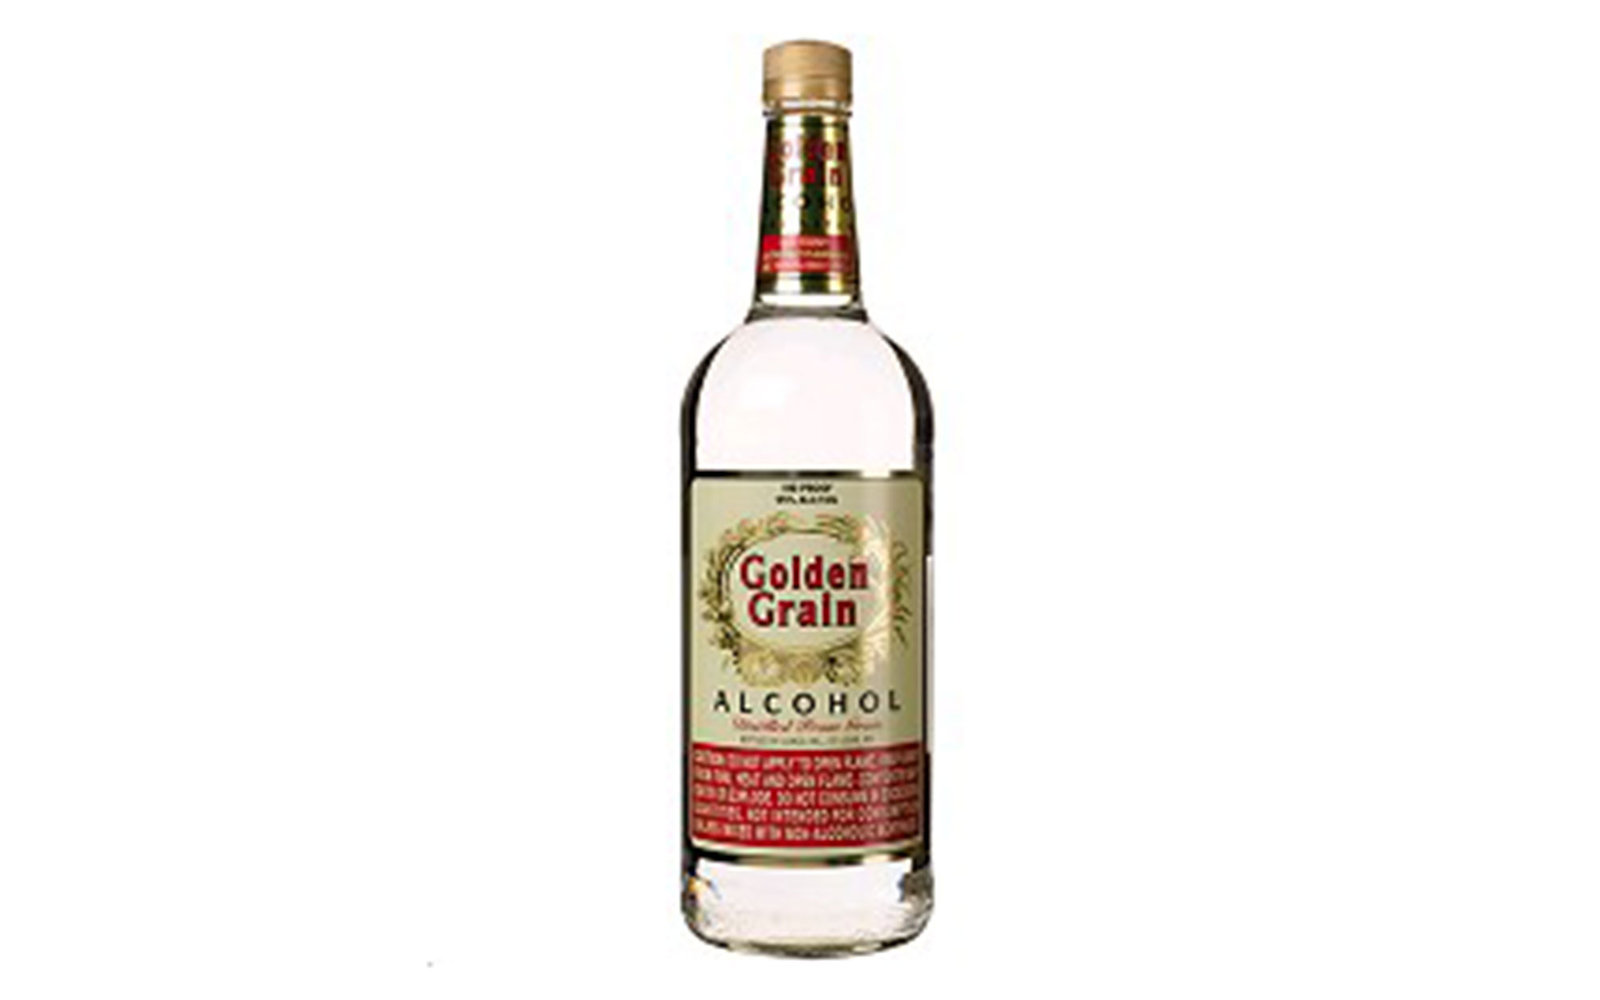 Golden Grain grain alcohol